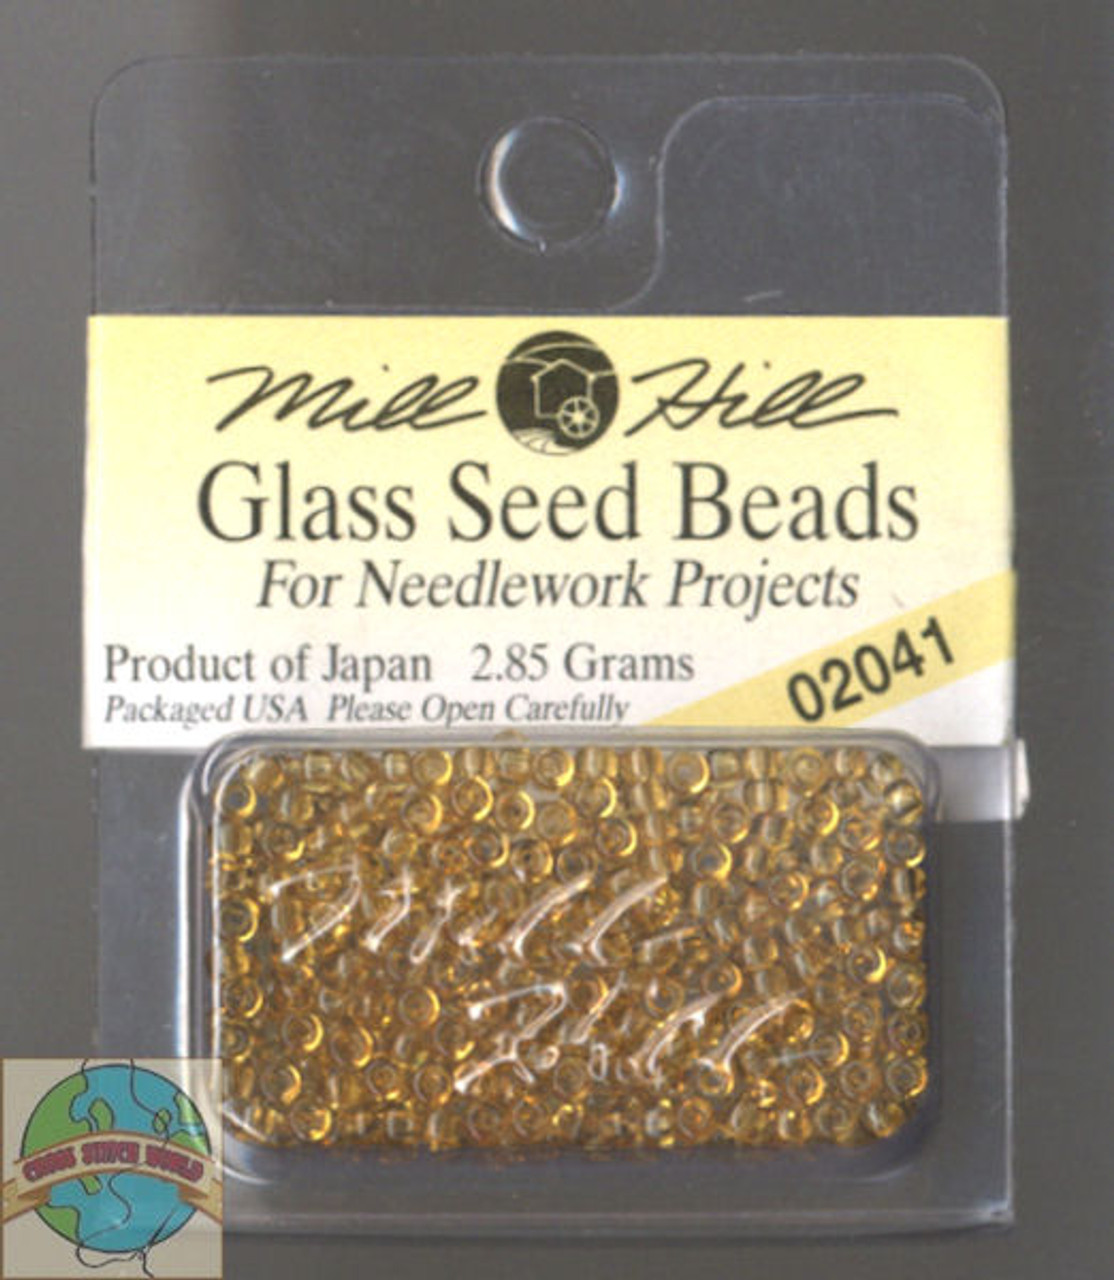 Mill Hill Glass Seed Beads 2.85g Maple #02041